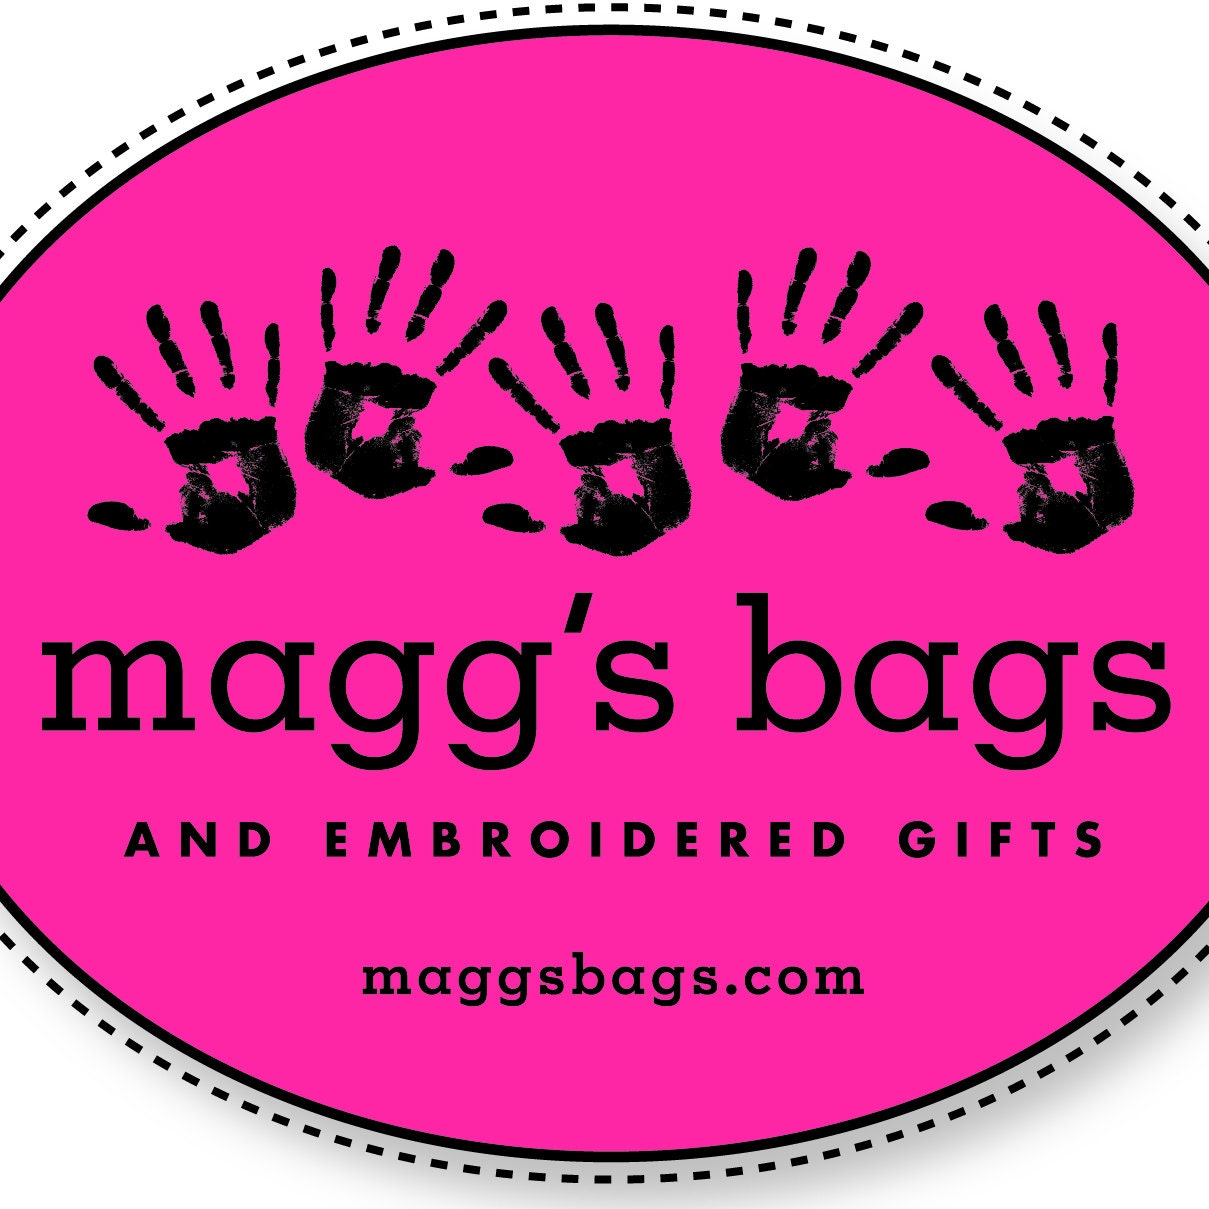 Maggs Bags & Embroidered Gifts by Maggsbag on Etsy